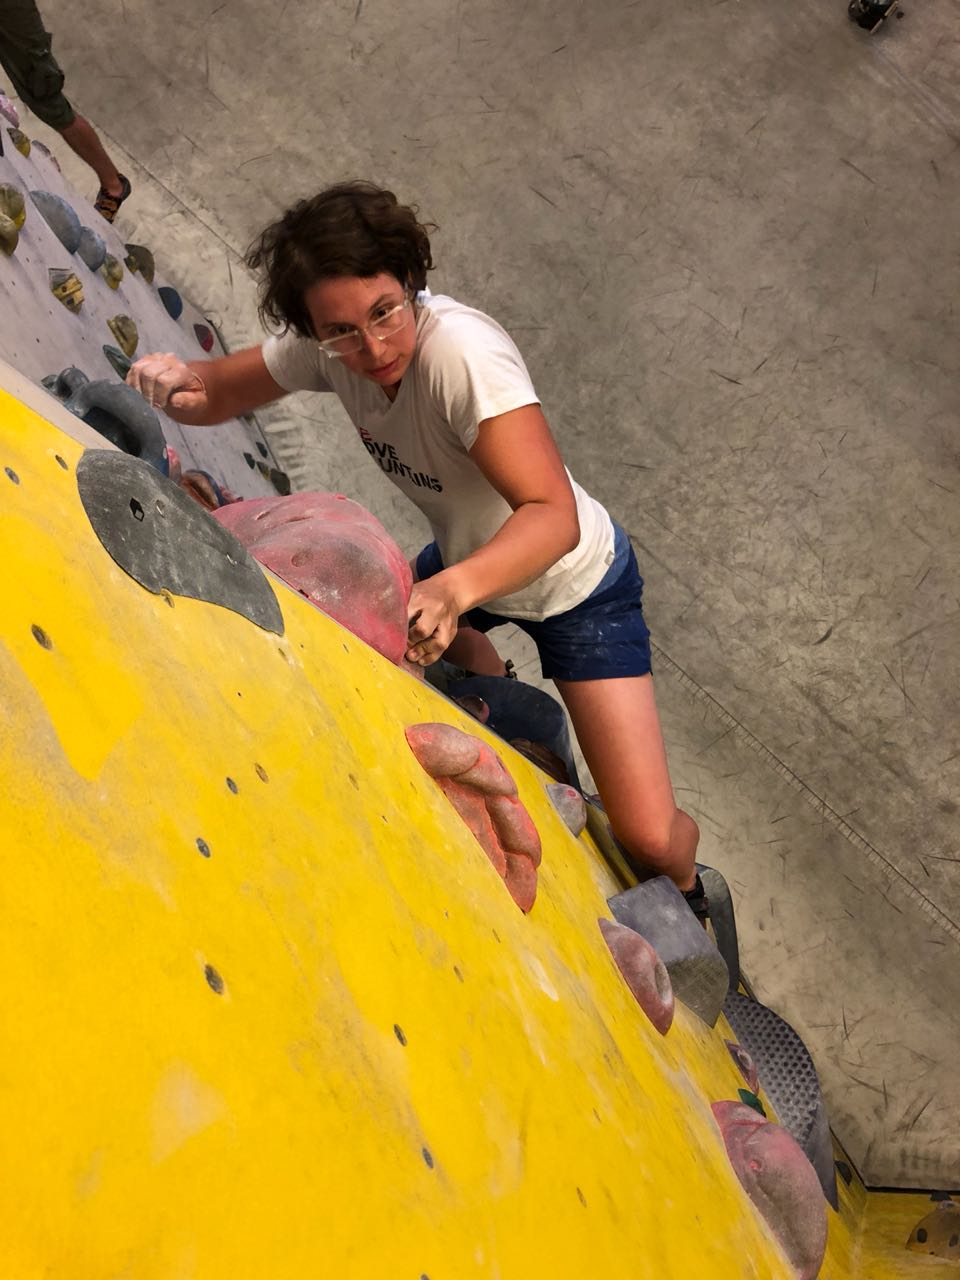 bouldern-moni-retschy-munichmountaingirls-24